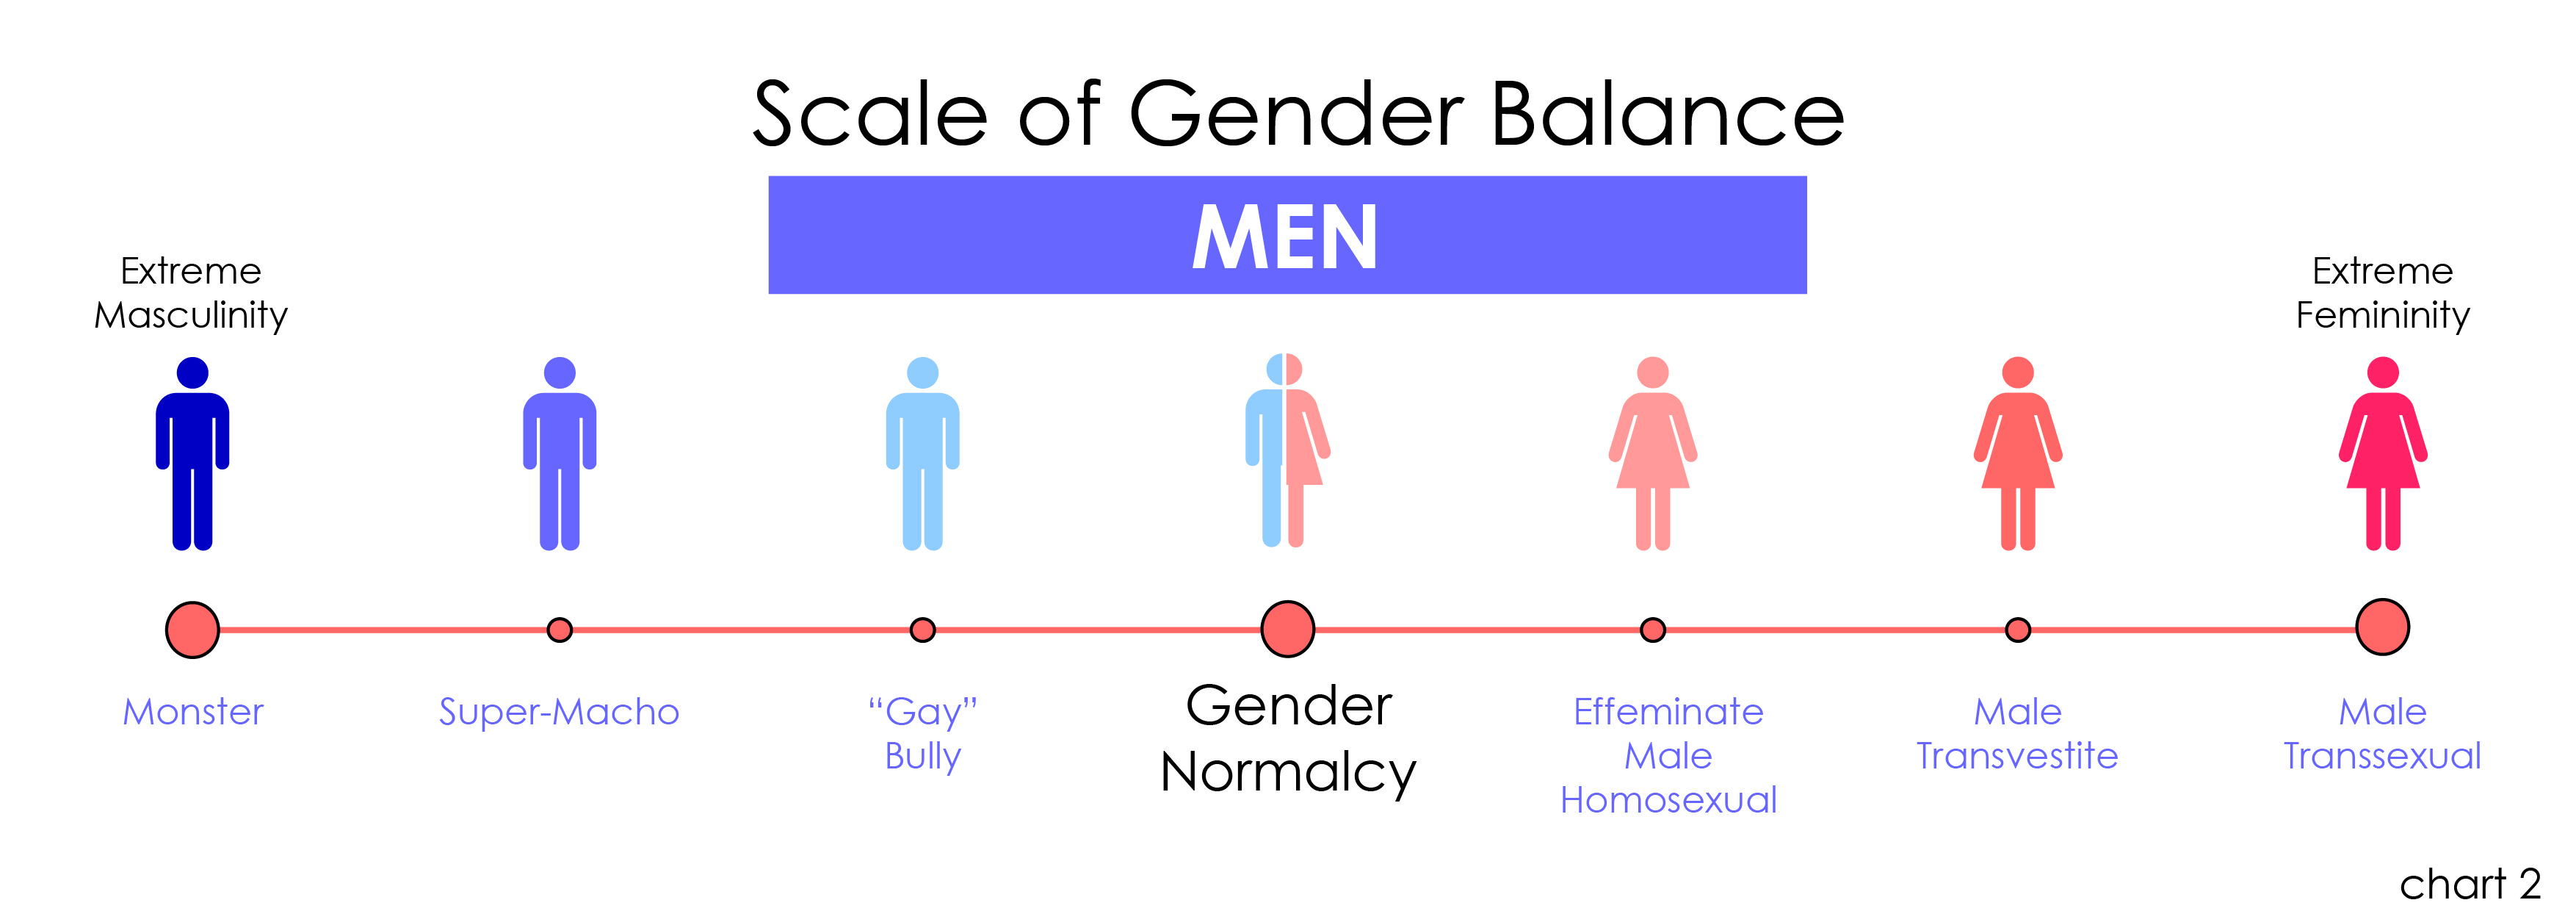 Gender roles and physical function in older adults